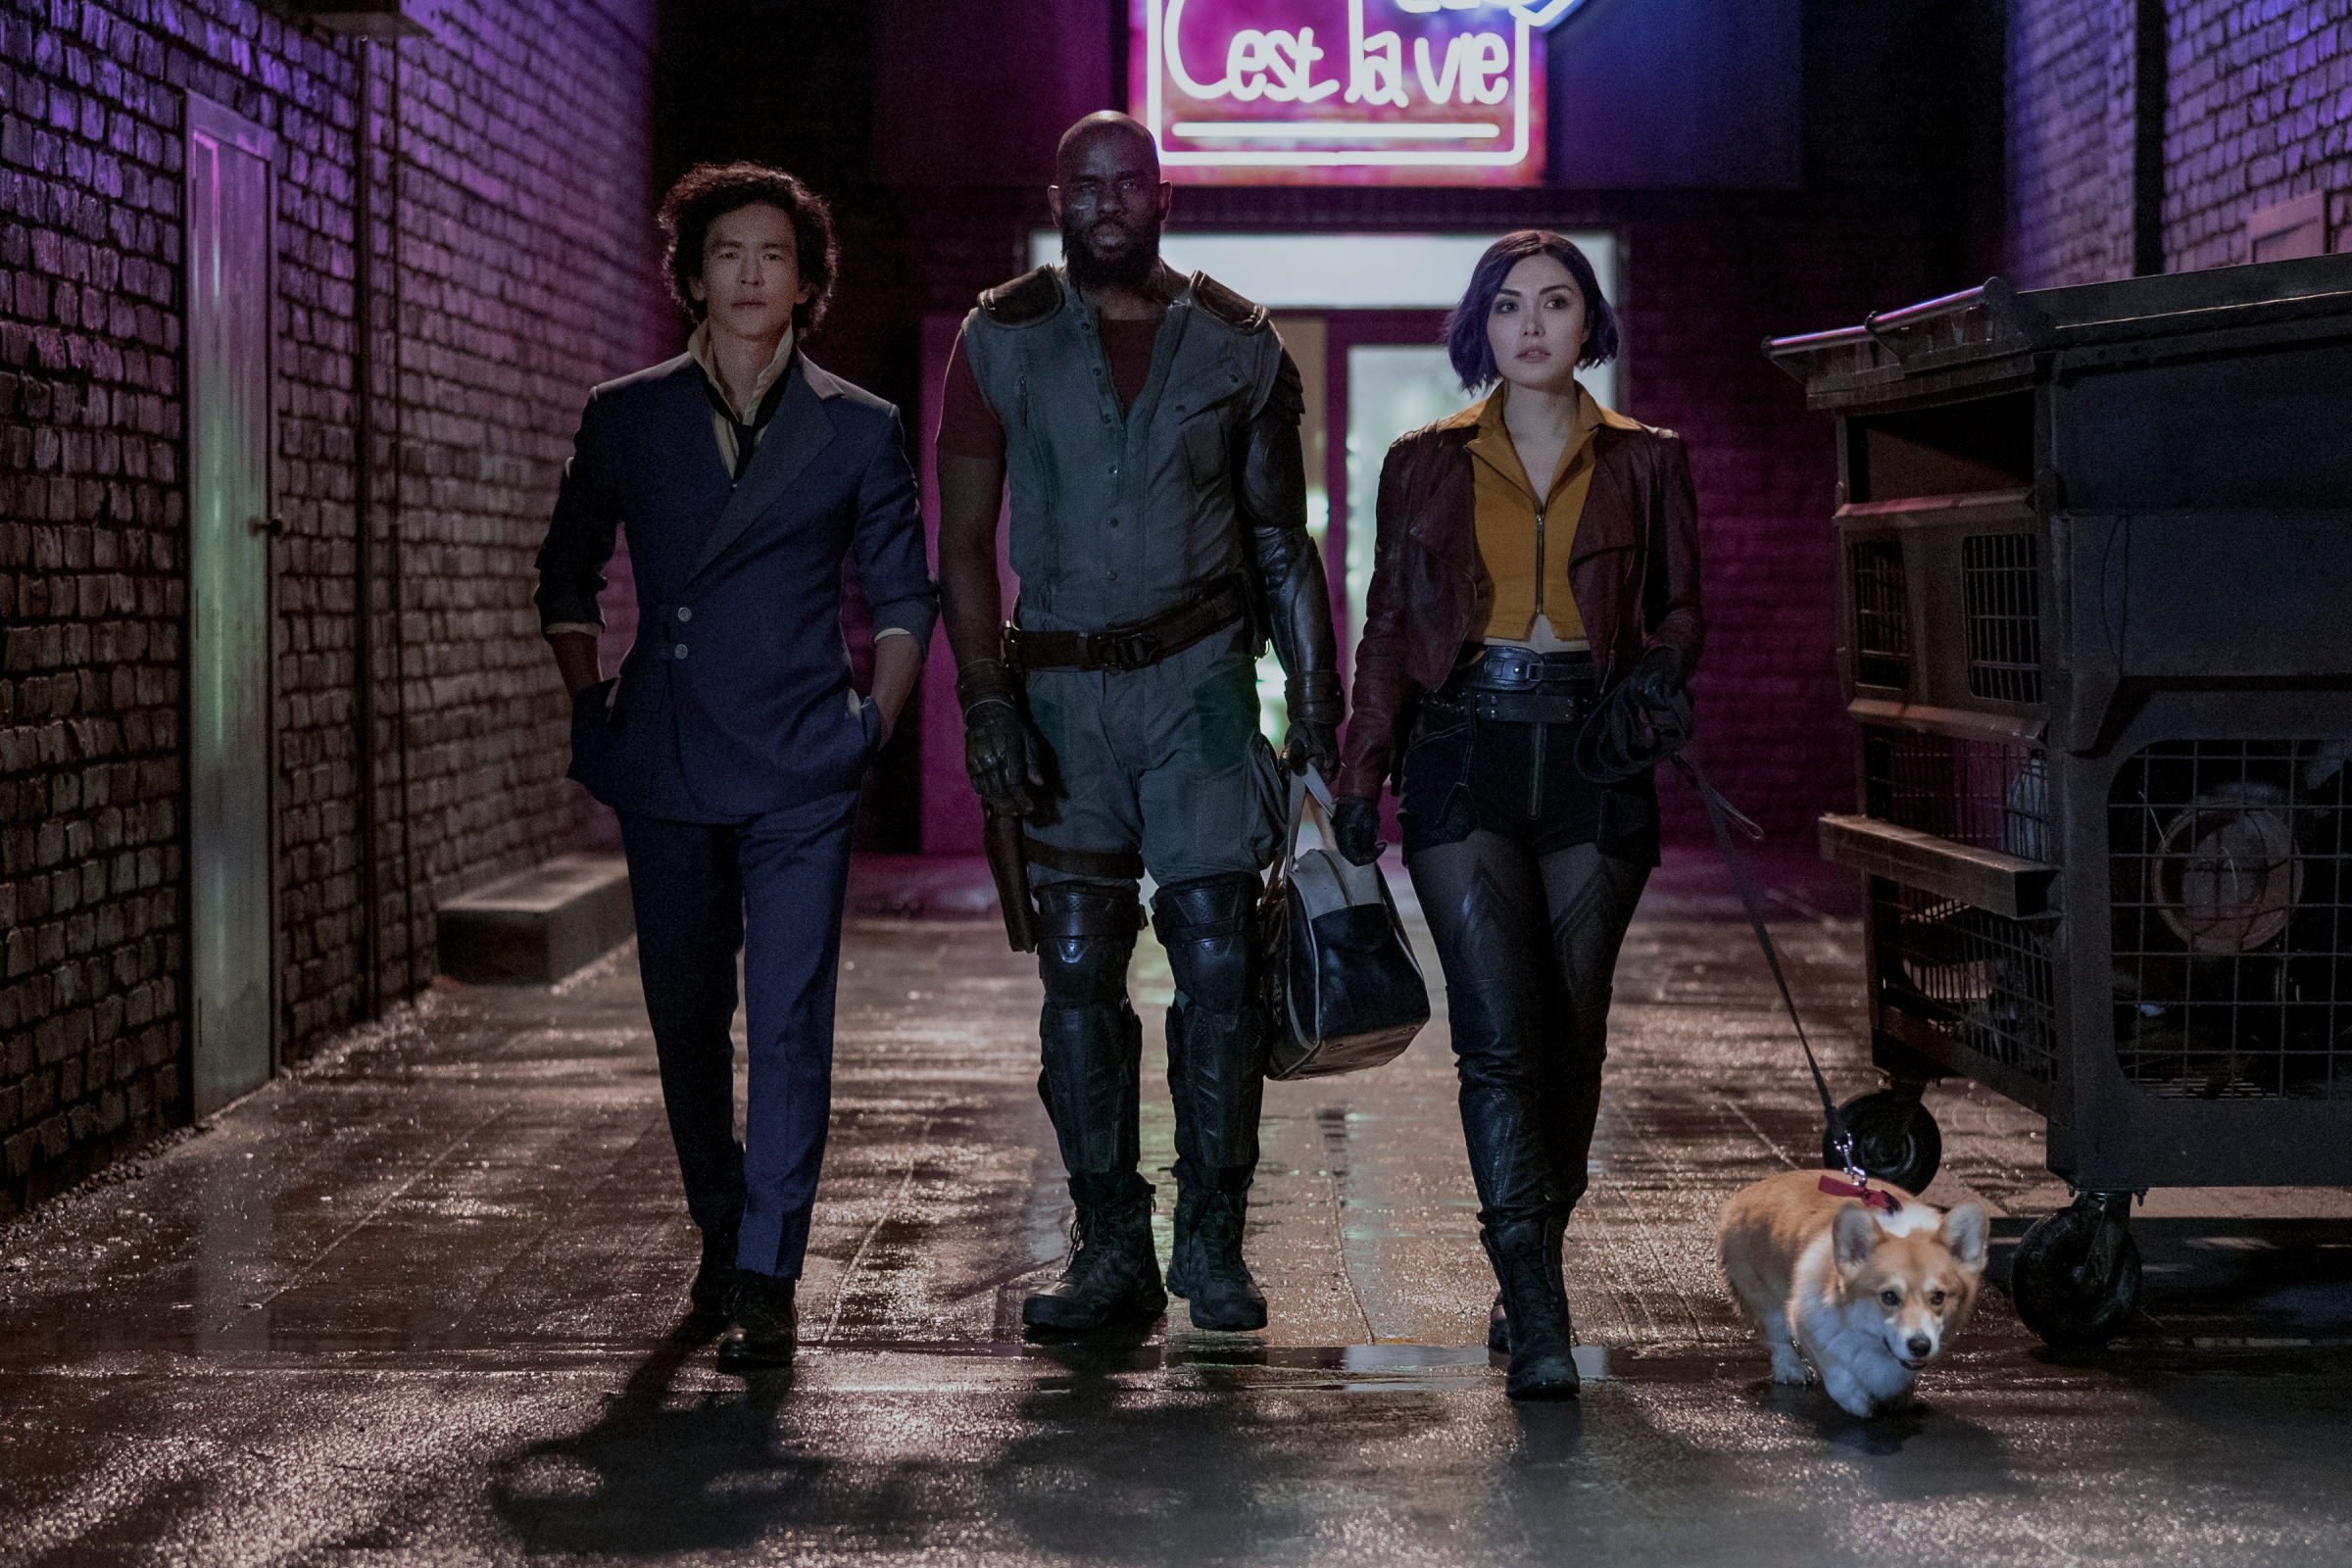 Netflix Just Revealed A First Look At Its Live-Action Cowboy Bebop Series